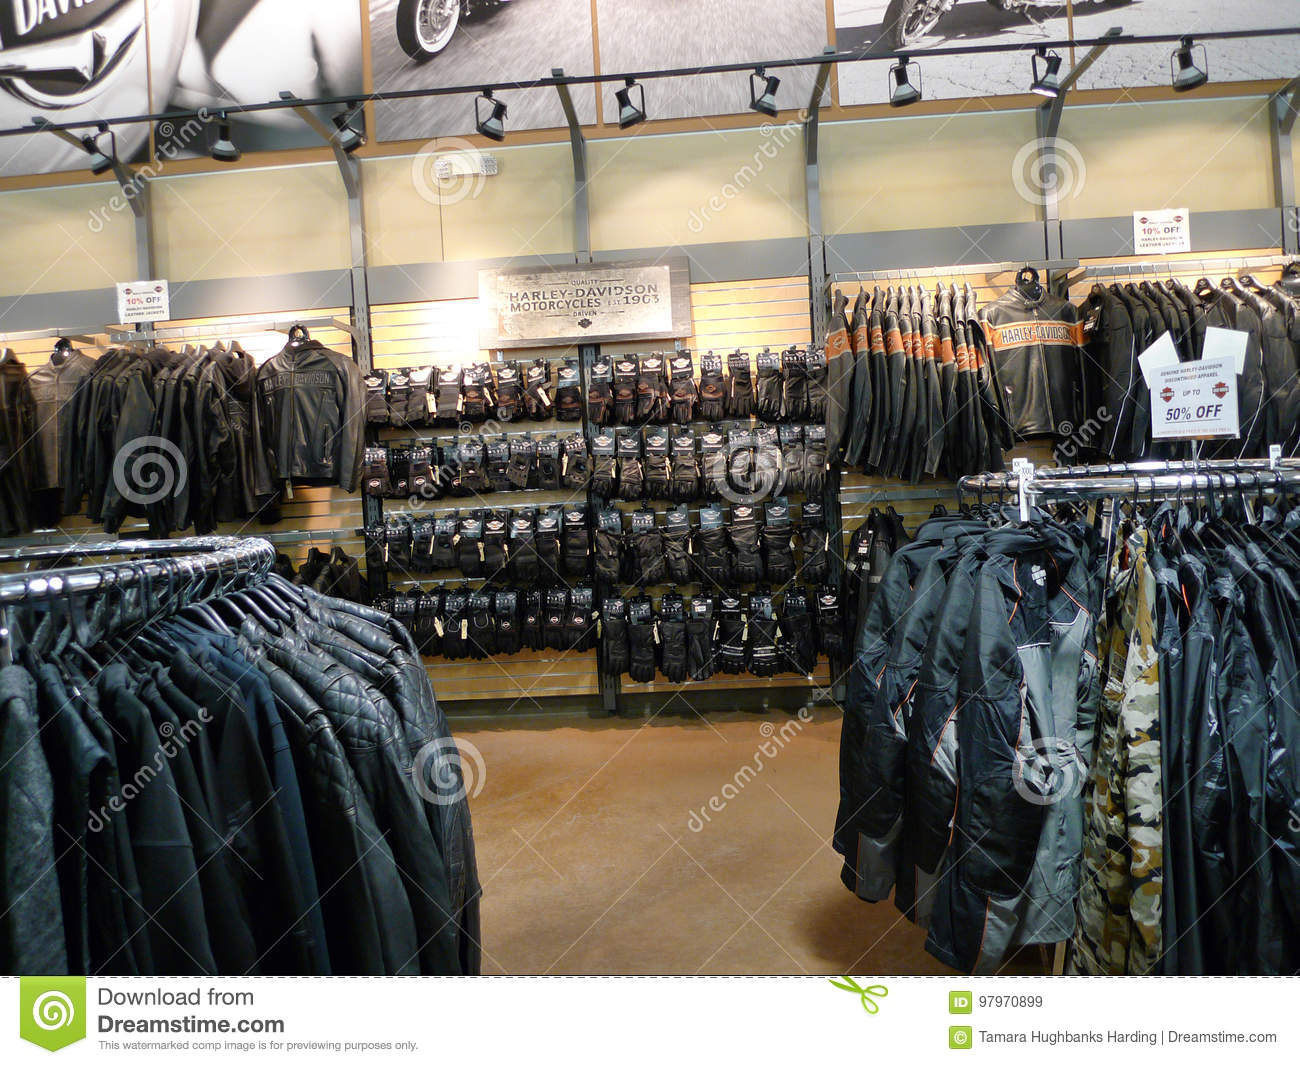 Coats, jackets and gloves at Black Hills Harley Davidson, Rapid City, South Dakota